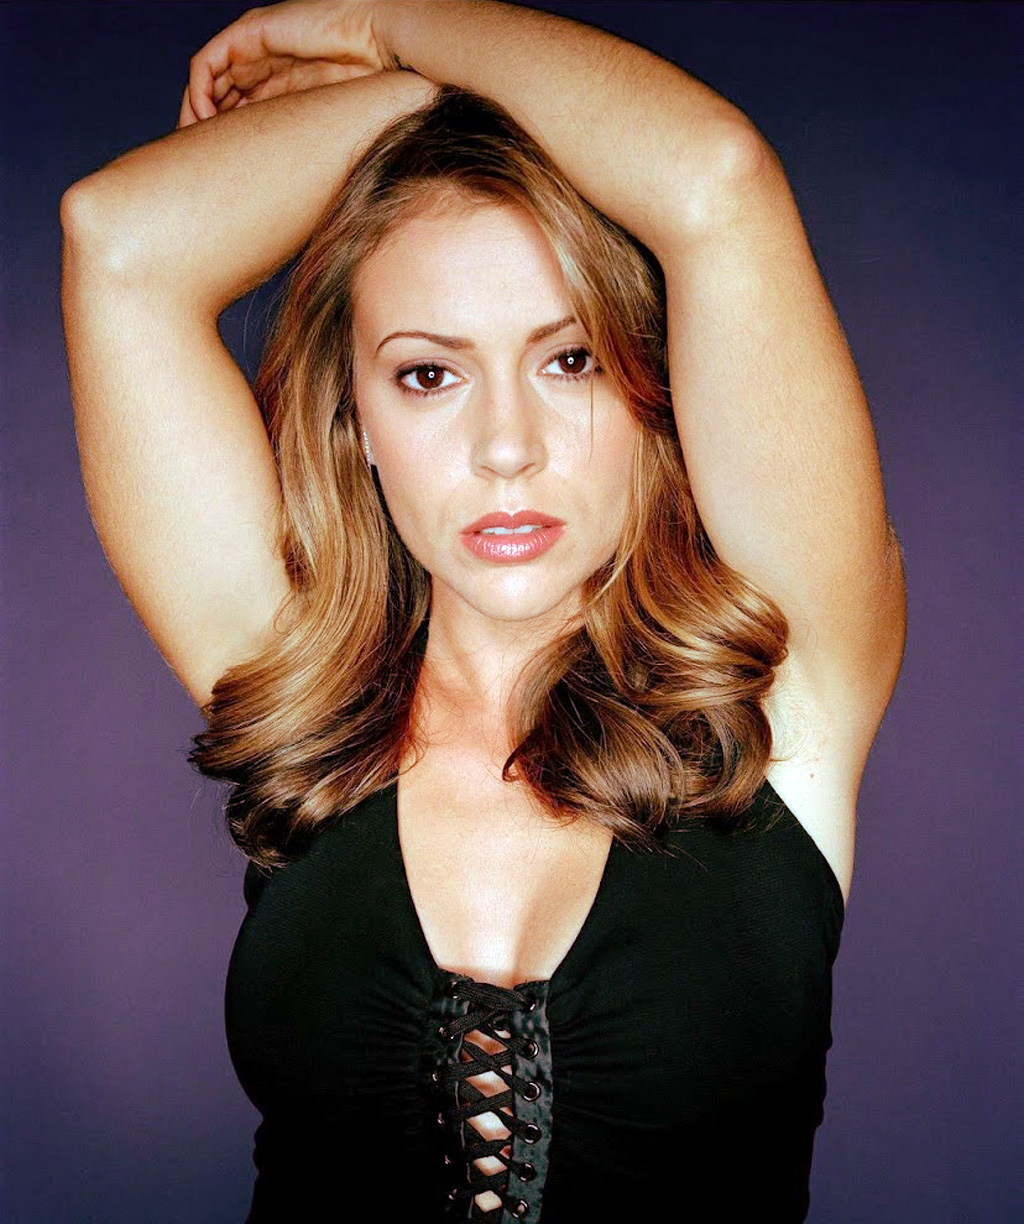 alyssa milano, the definitive gallery | dvdbash